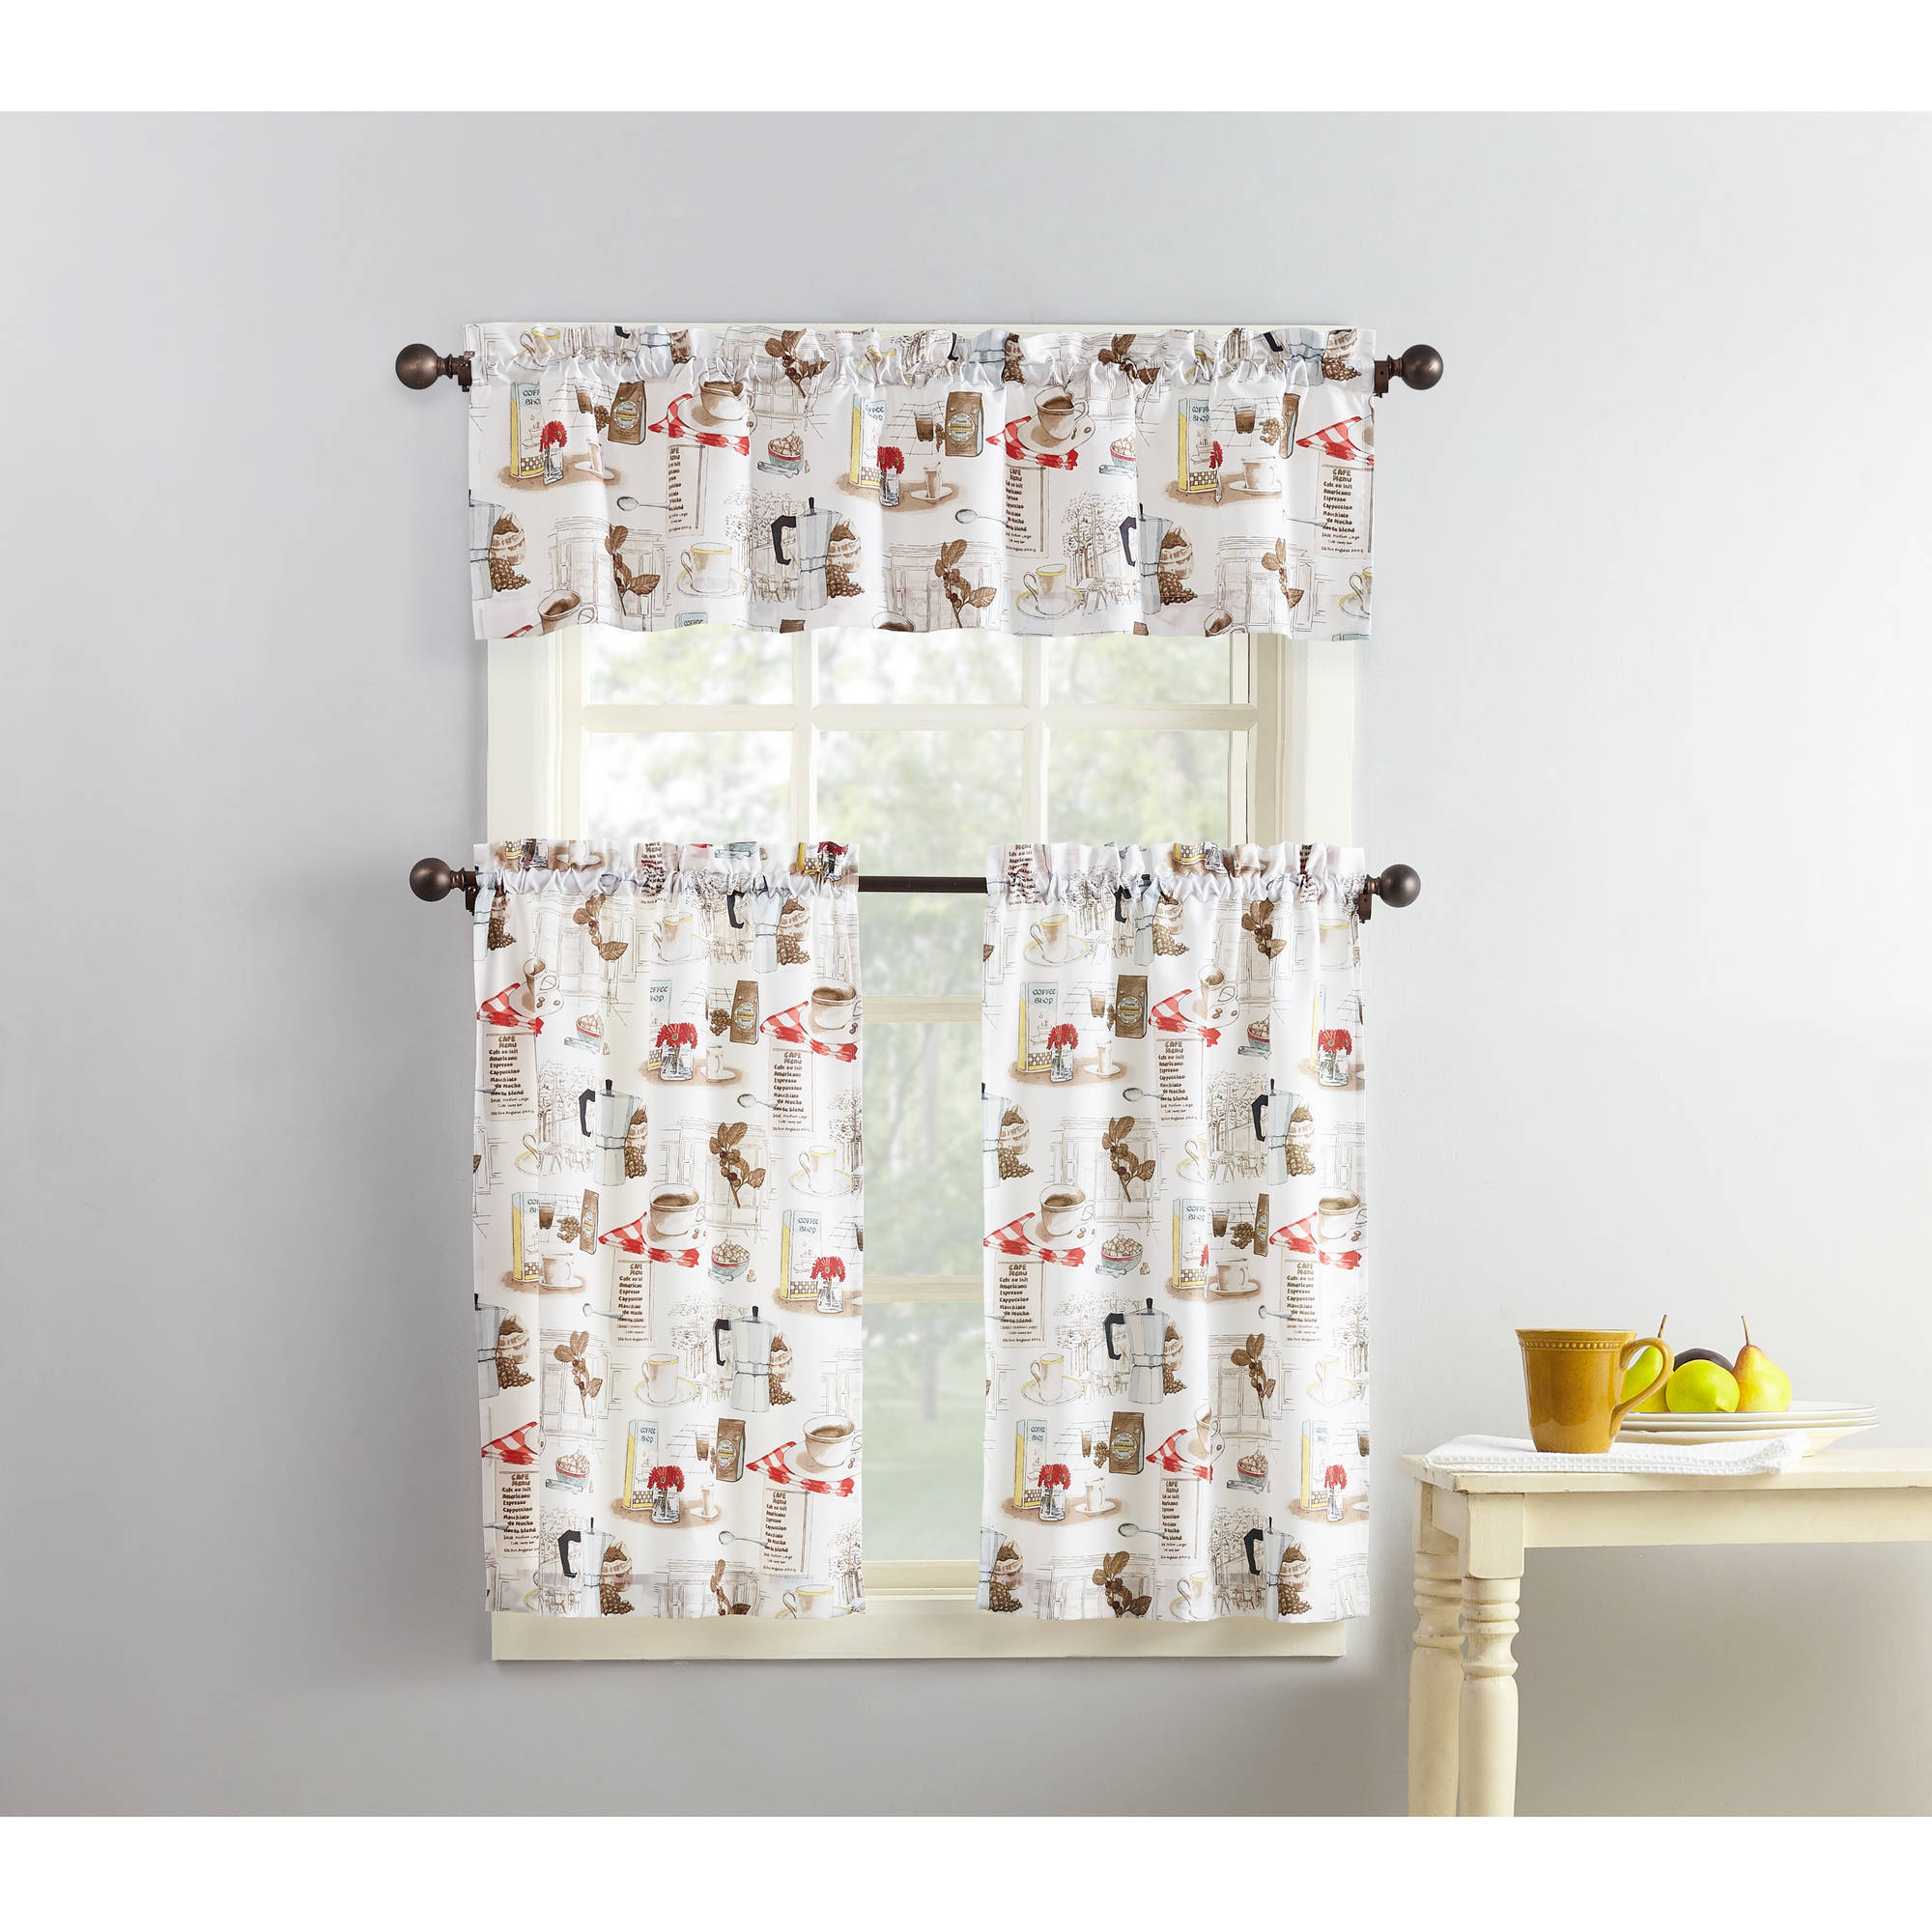 marvelous Kitchen Curtain And Valance Set Part - 3: Mainstays Coffee Shop 3-Piece Kitchen Curtain and Valance Set - Walmart.com